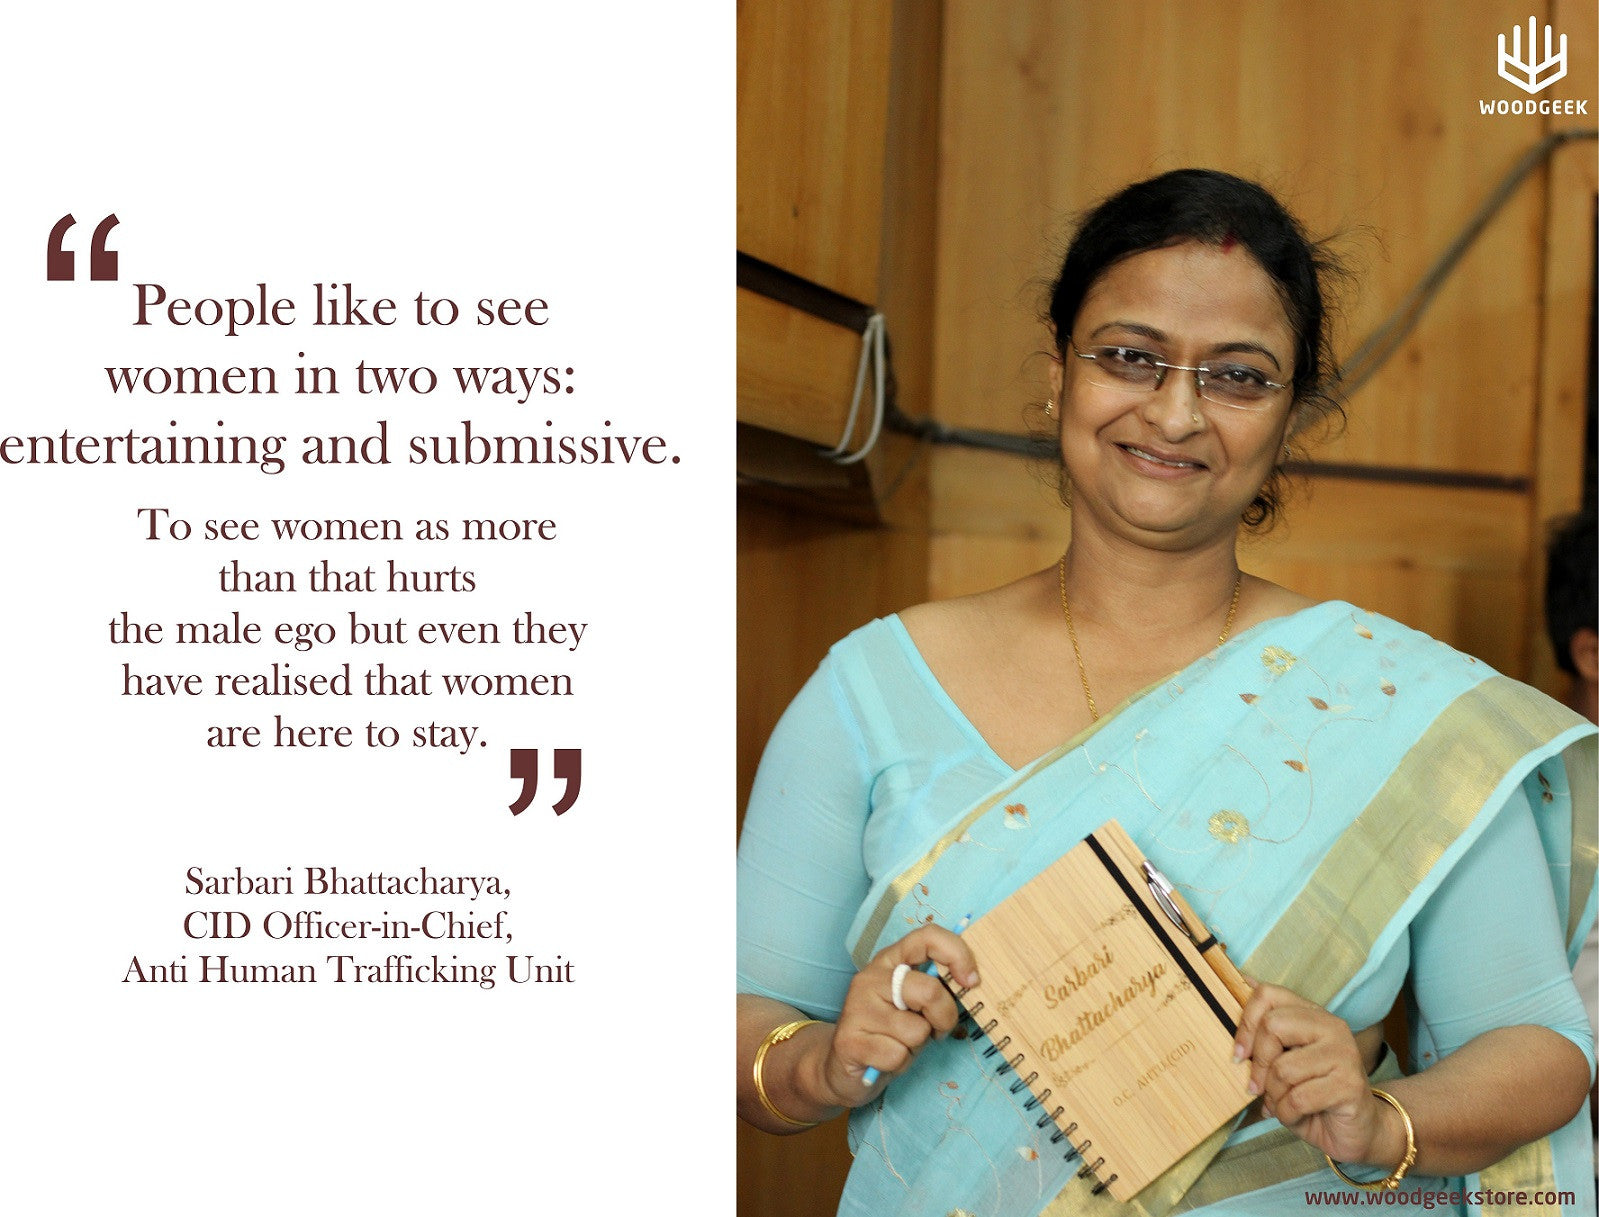 Sarbari Bhattacharya - Woman Police Officer - Celebrating the spirit of woman - Woodgeek Store